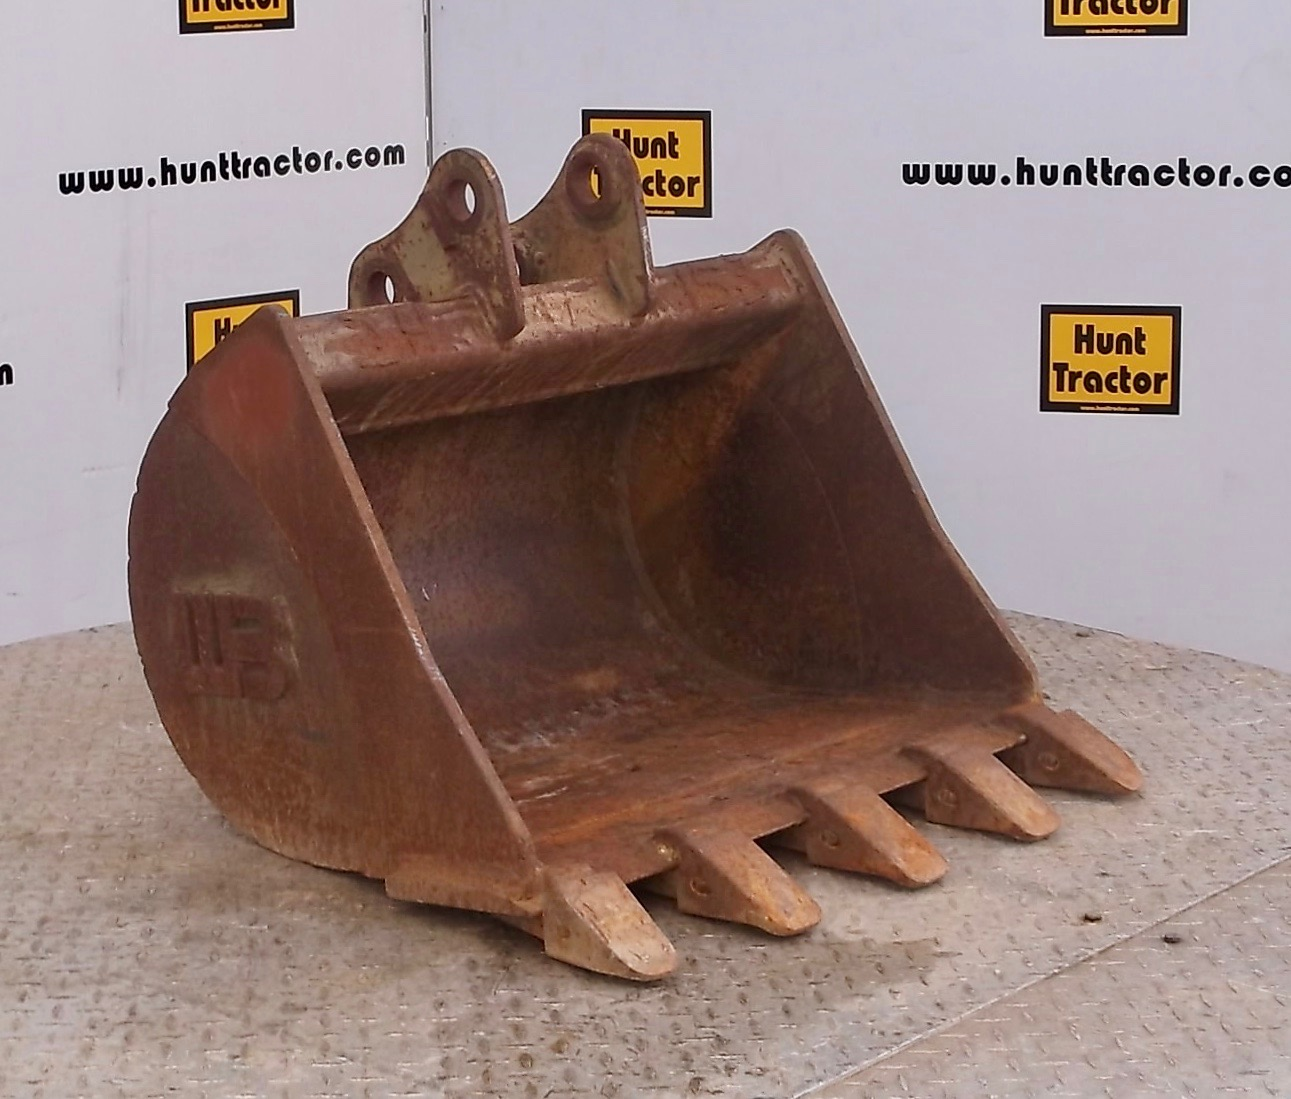 47843-24in Mini-Excavator Bucket-1